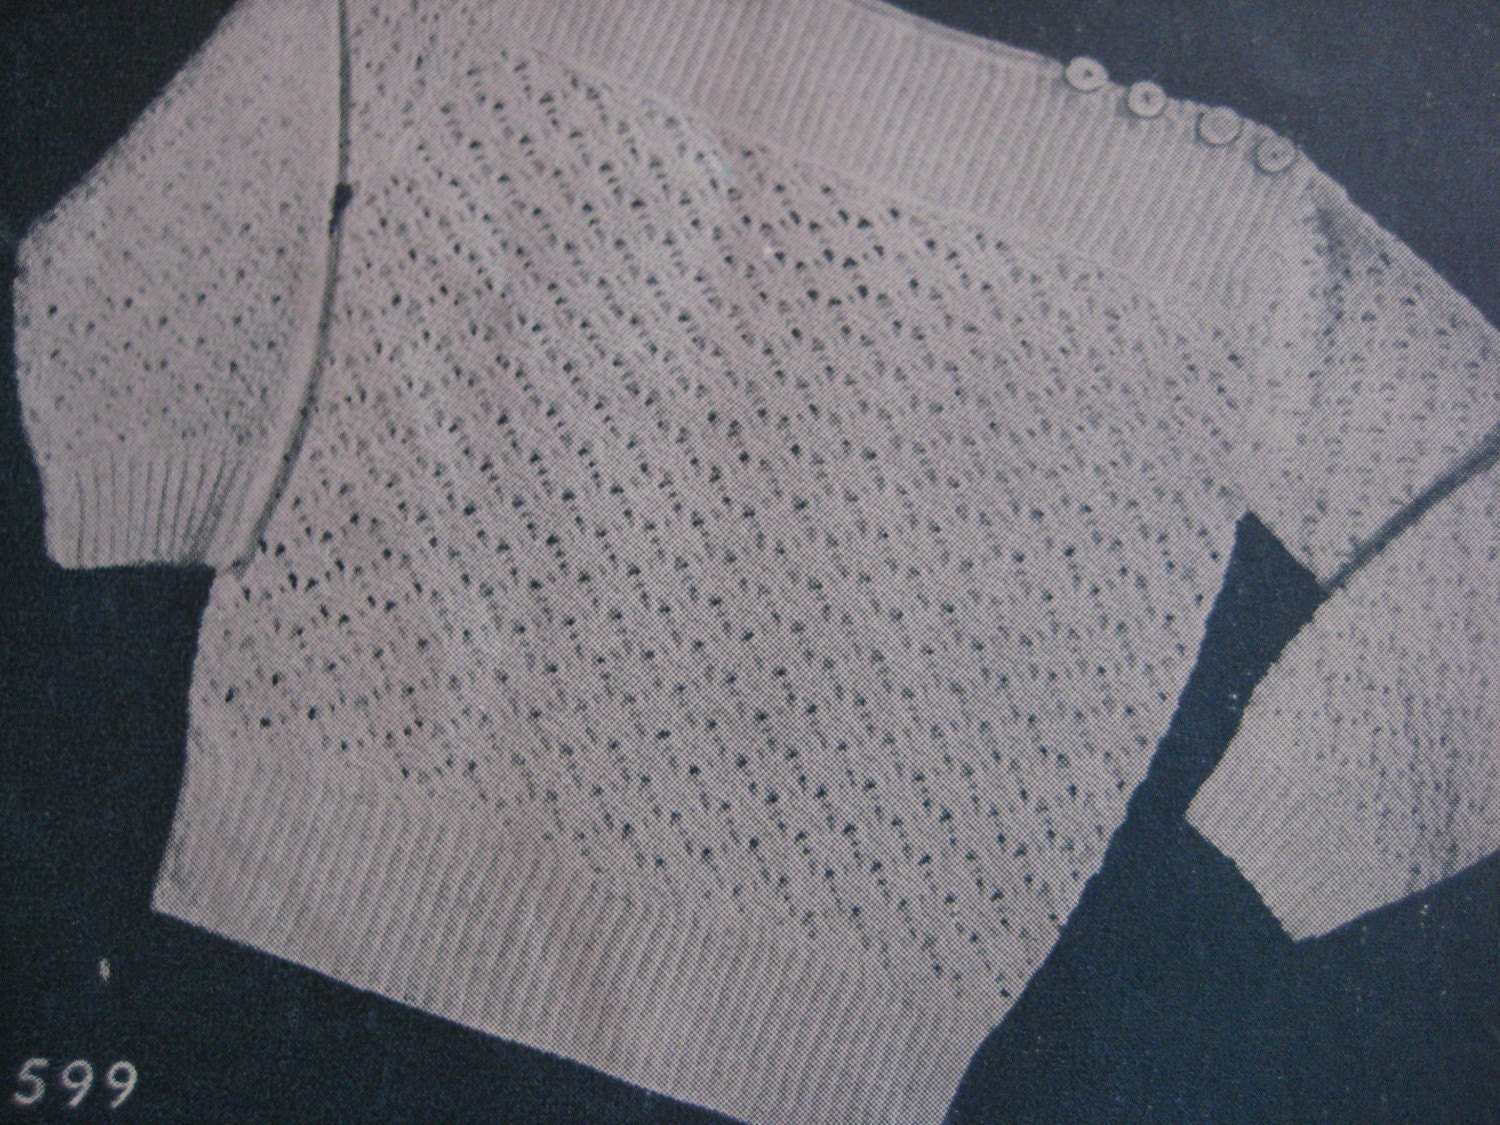 1940s Vintage Crochet Pattern for Baby Pullover Sweater